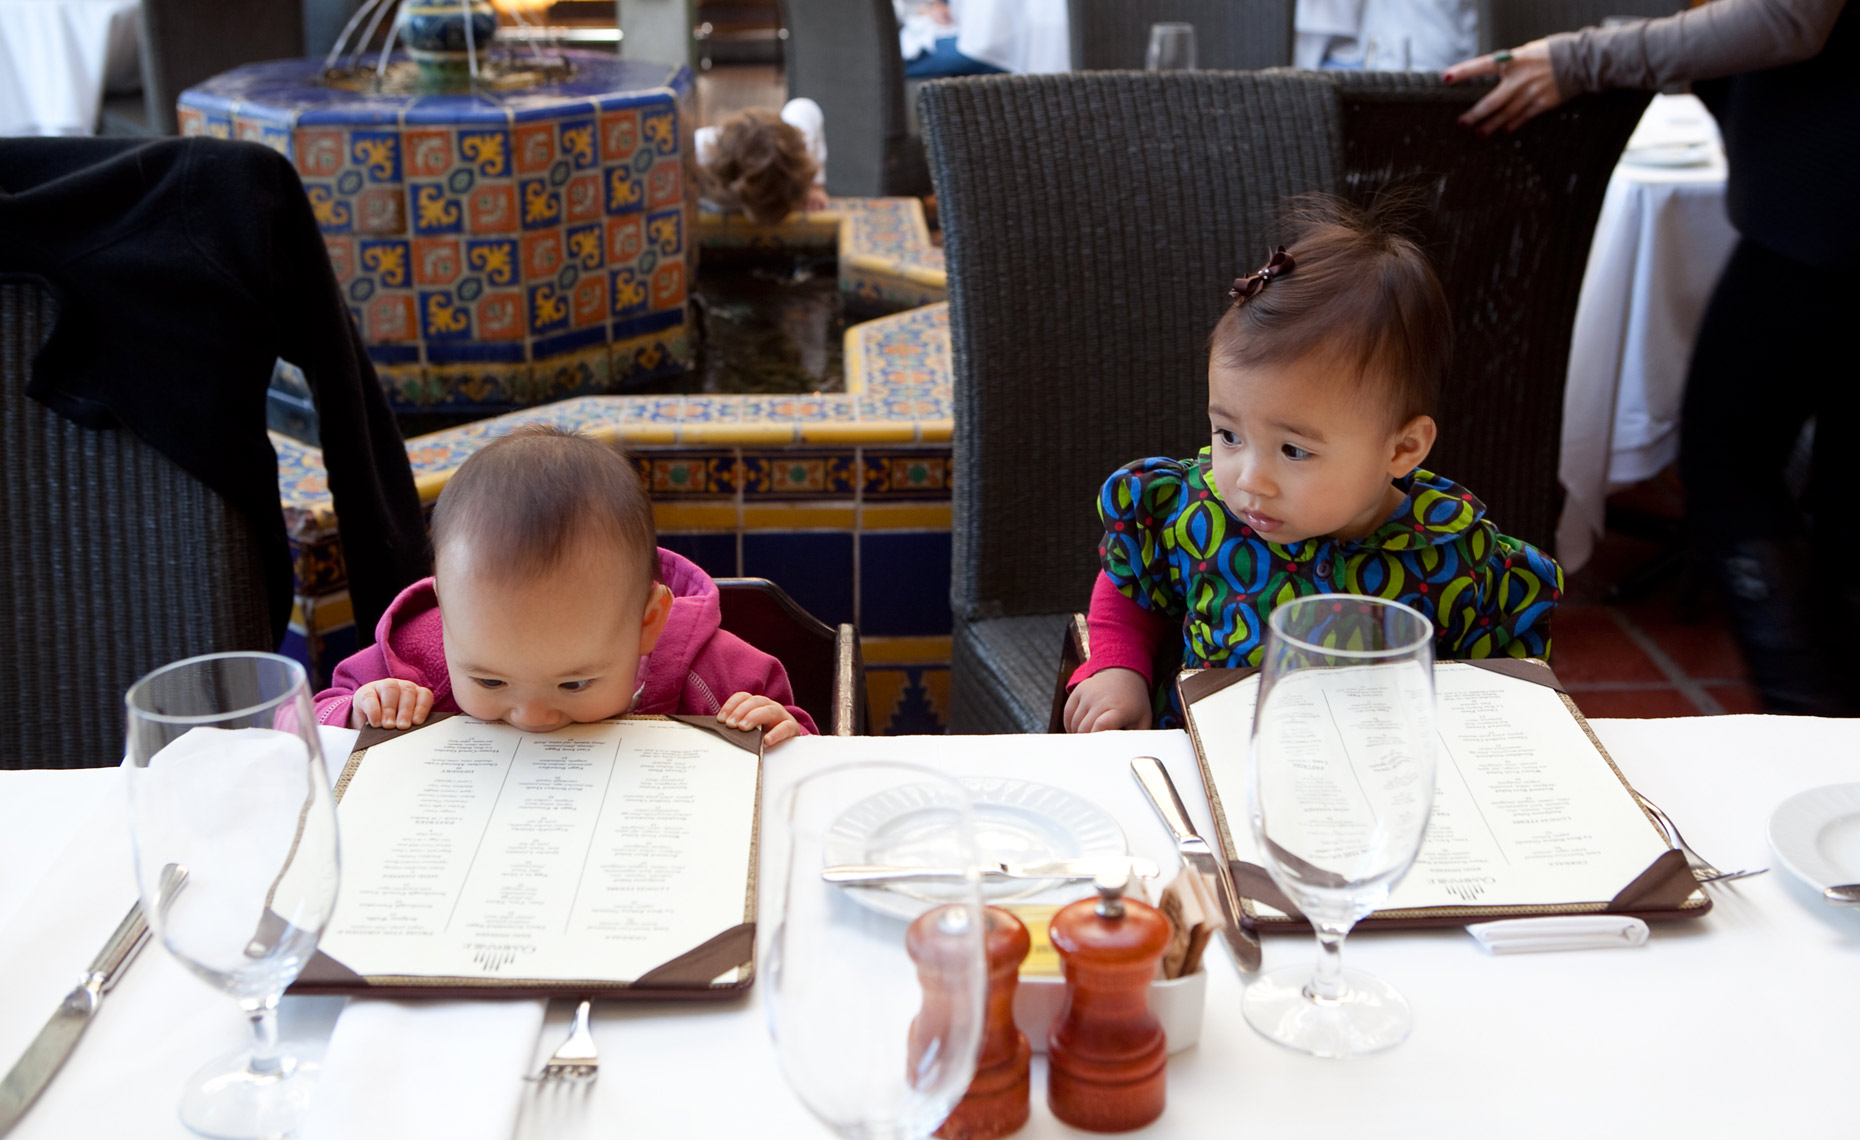 Baby Biting Menu at Fancy Restaurant